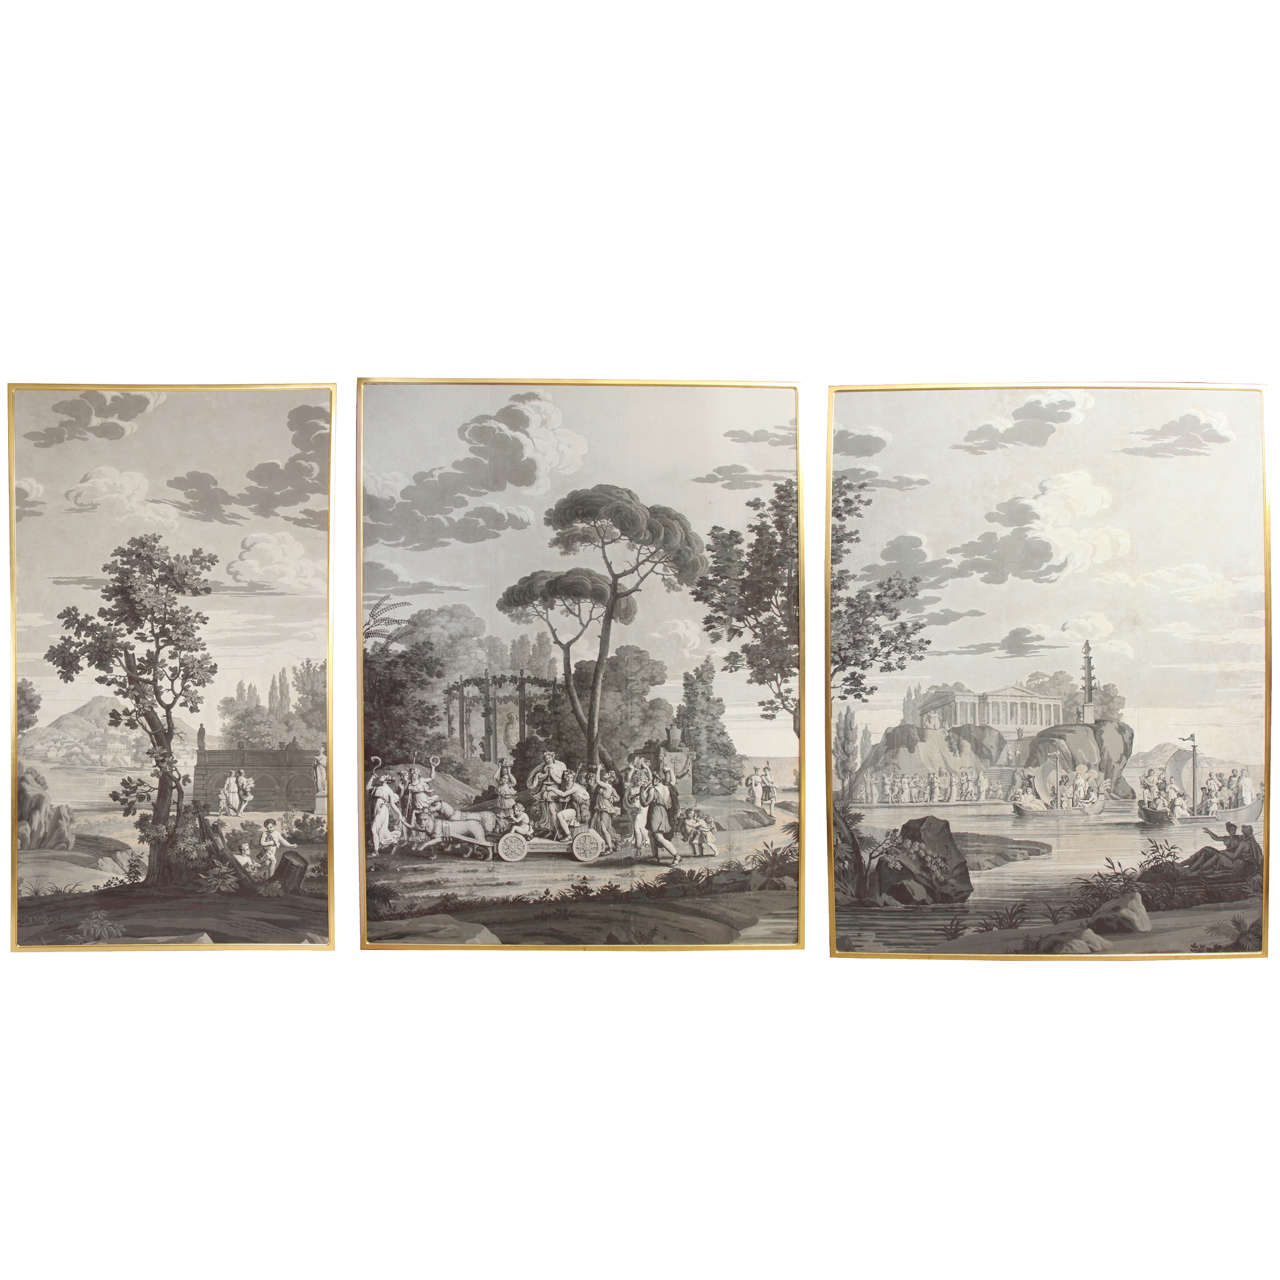 Joseph Dufour grisaille wall panels, 1820s